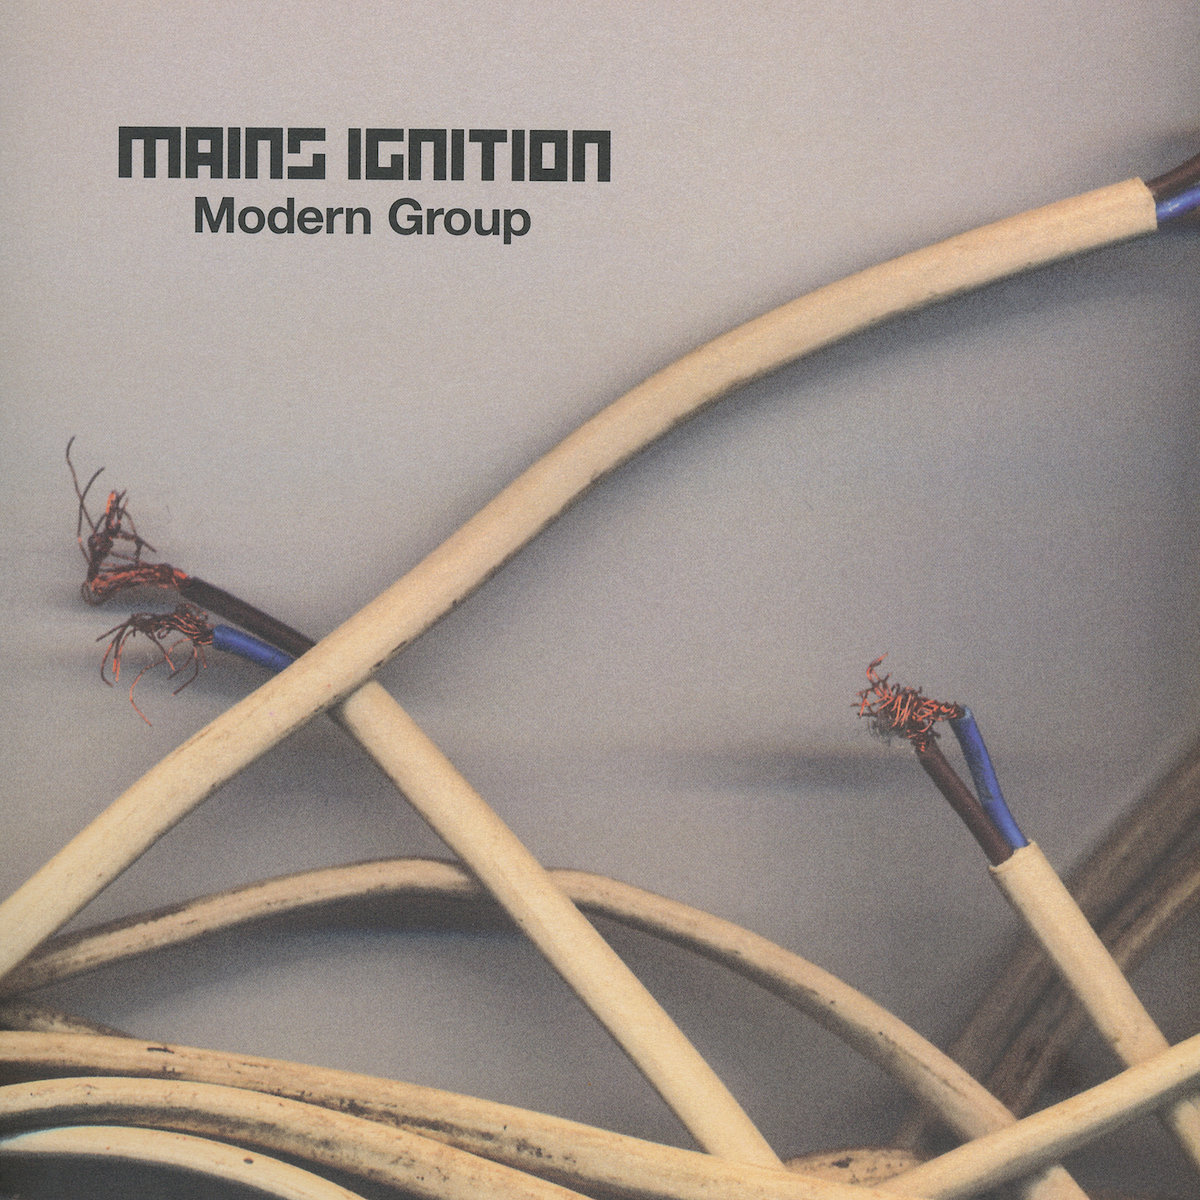 Modern Group Mains Ignition Electrical Wiring By